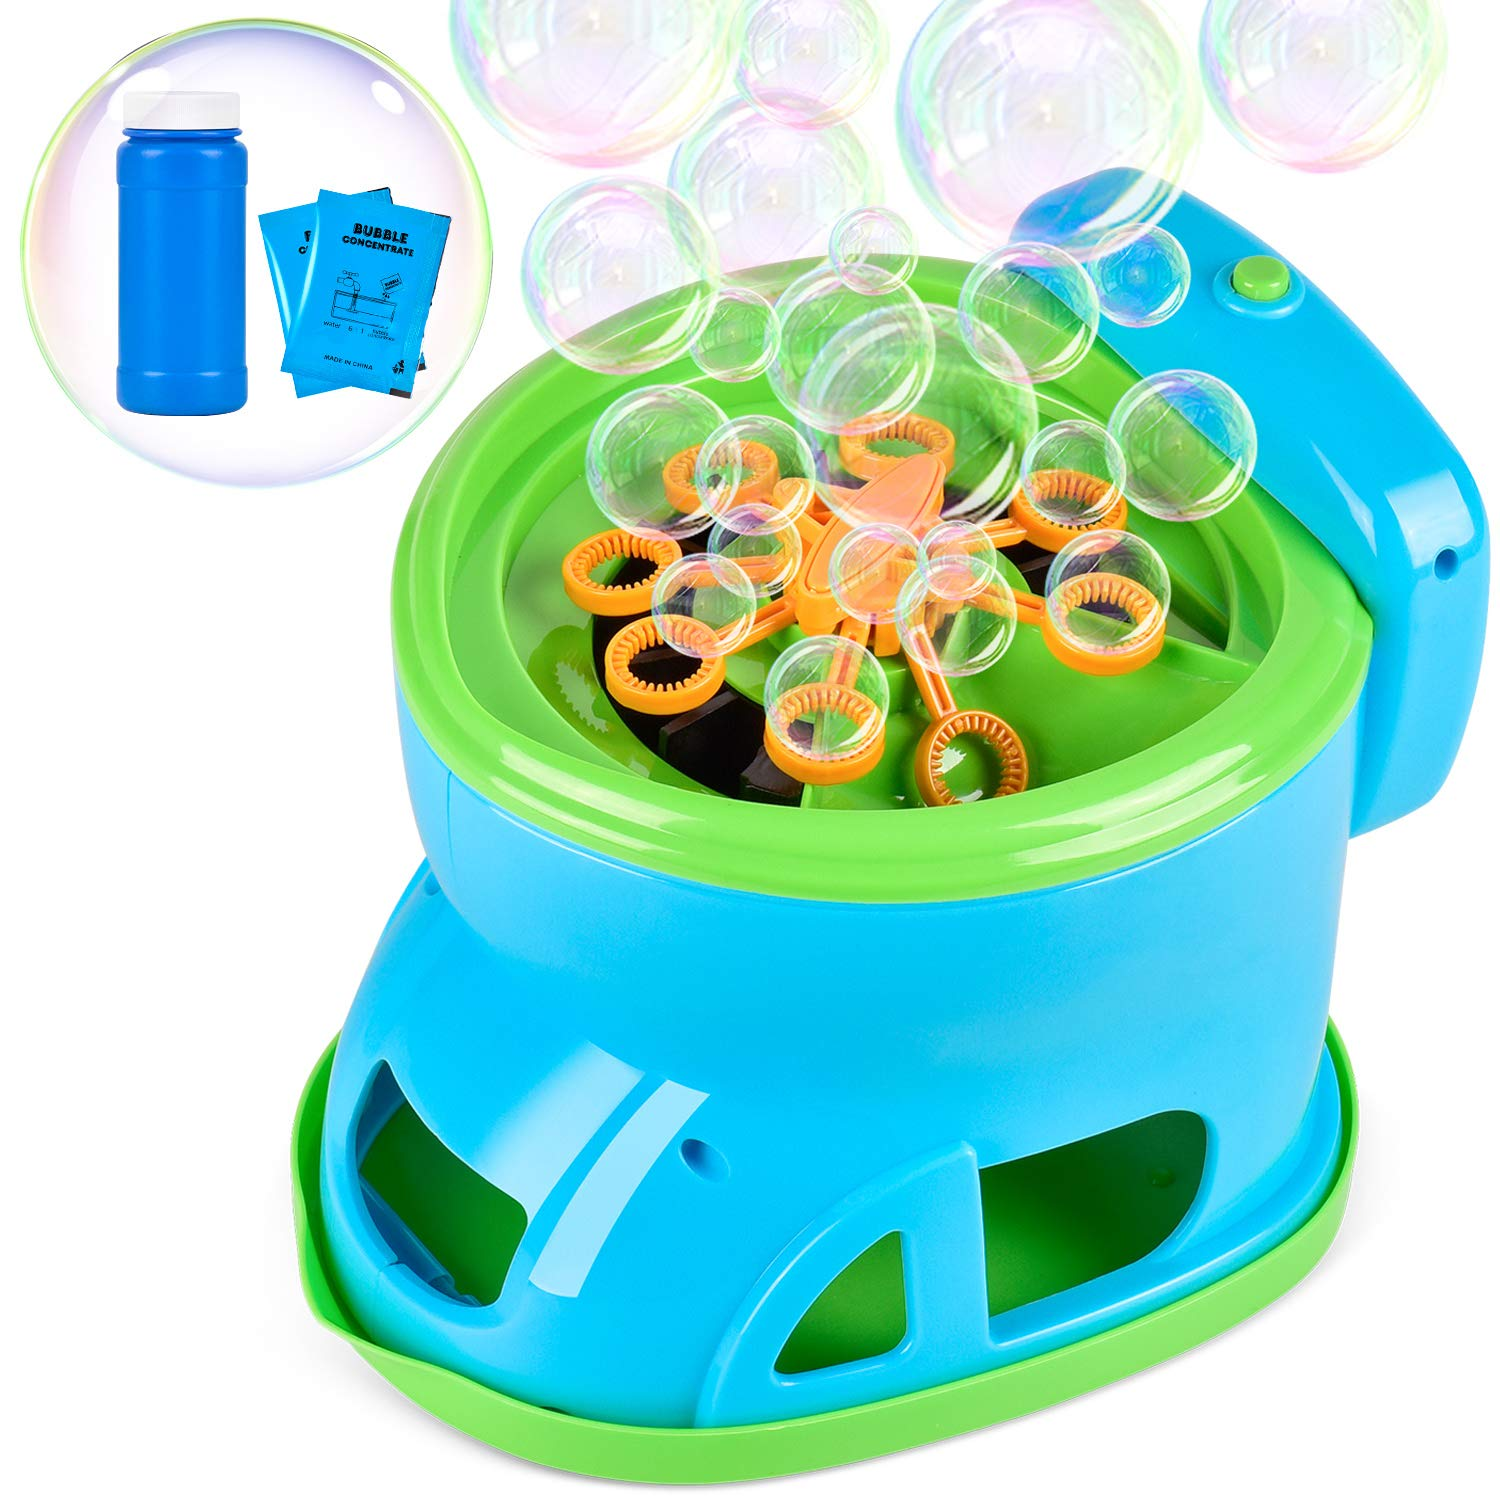 Bubble Machine, Automatic Bubble Maker Cartoon Toilet Over 2100 Bubbles Per Minute Bubble Blower Toy for Kids Boys Girls Easy to Use for Indoor Outdoor Party Wedding Baby Showers ( 2020 New Version)